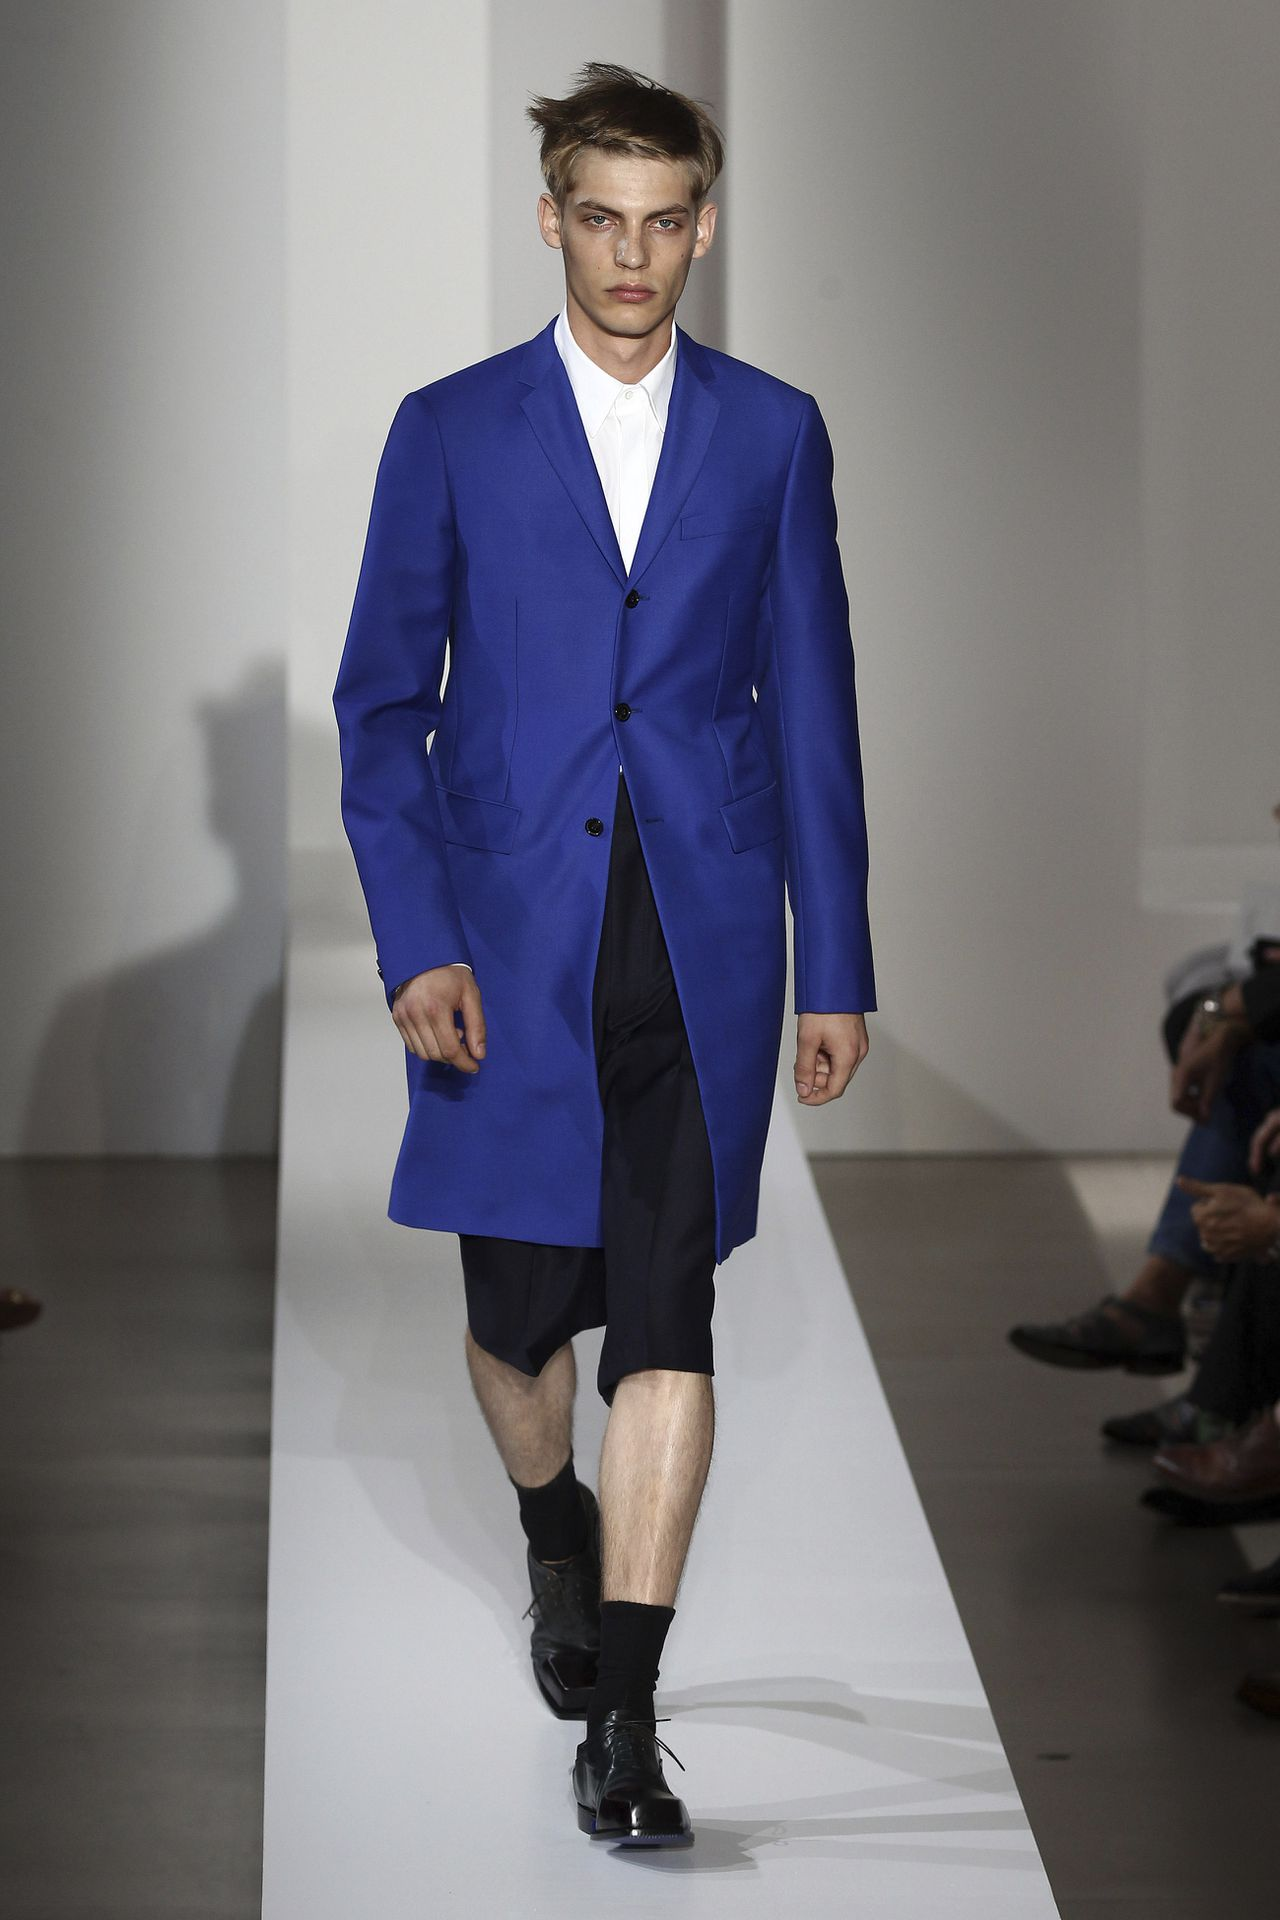 PHOTO © TEAM PETER STIGTER FILENAME IS DESIGNER NAME MENSWEAR SPRING/SUMMER 2013